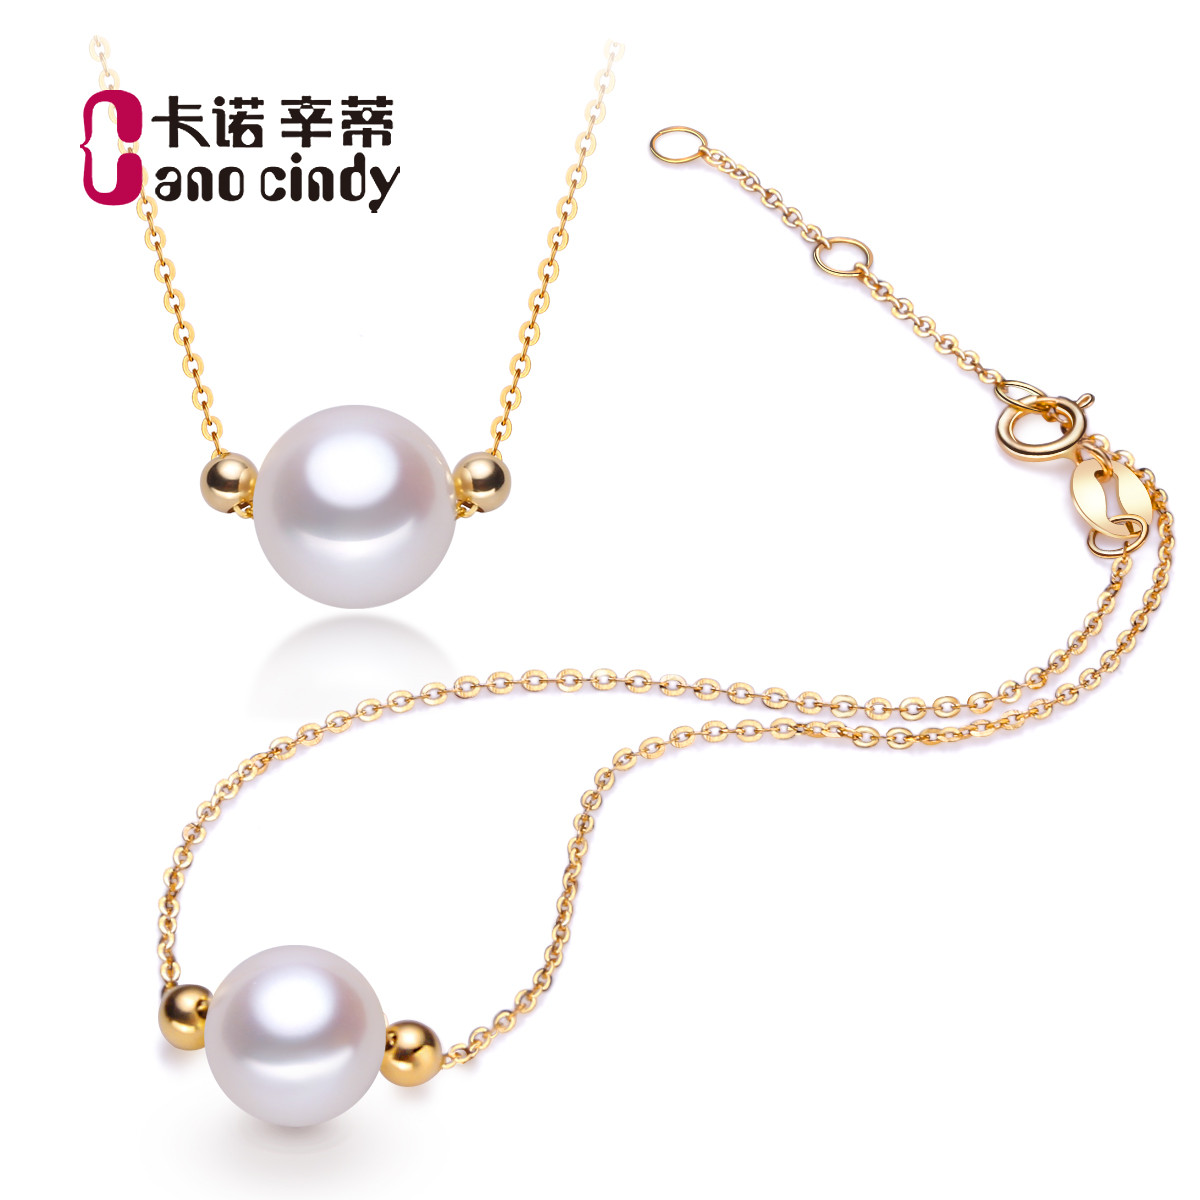 Canocindy/kano cindy freshwater pearl perfect circle glare necklace k gold bracelet to send his girlfriend simple